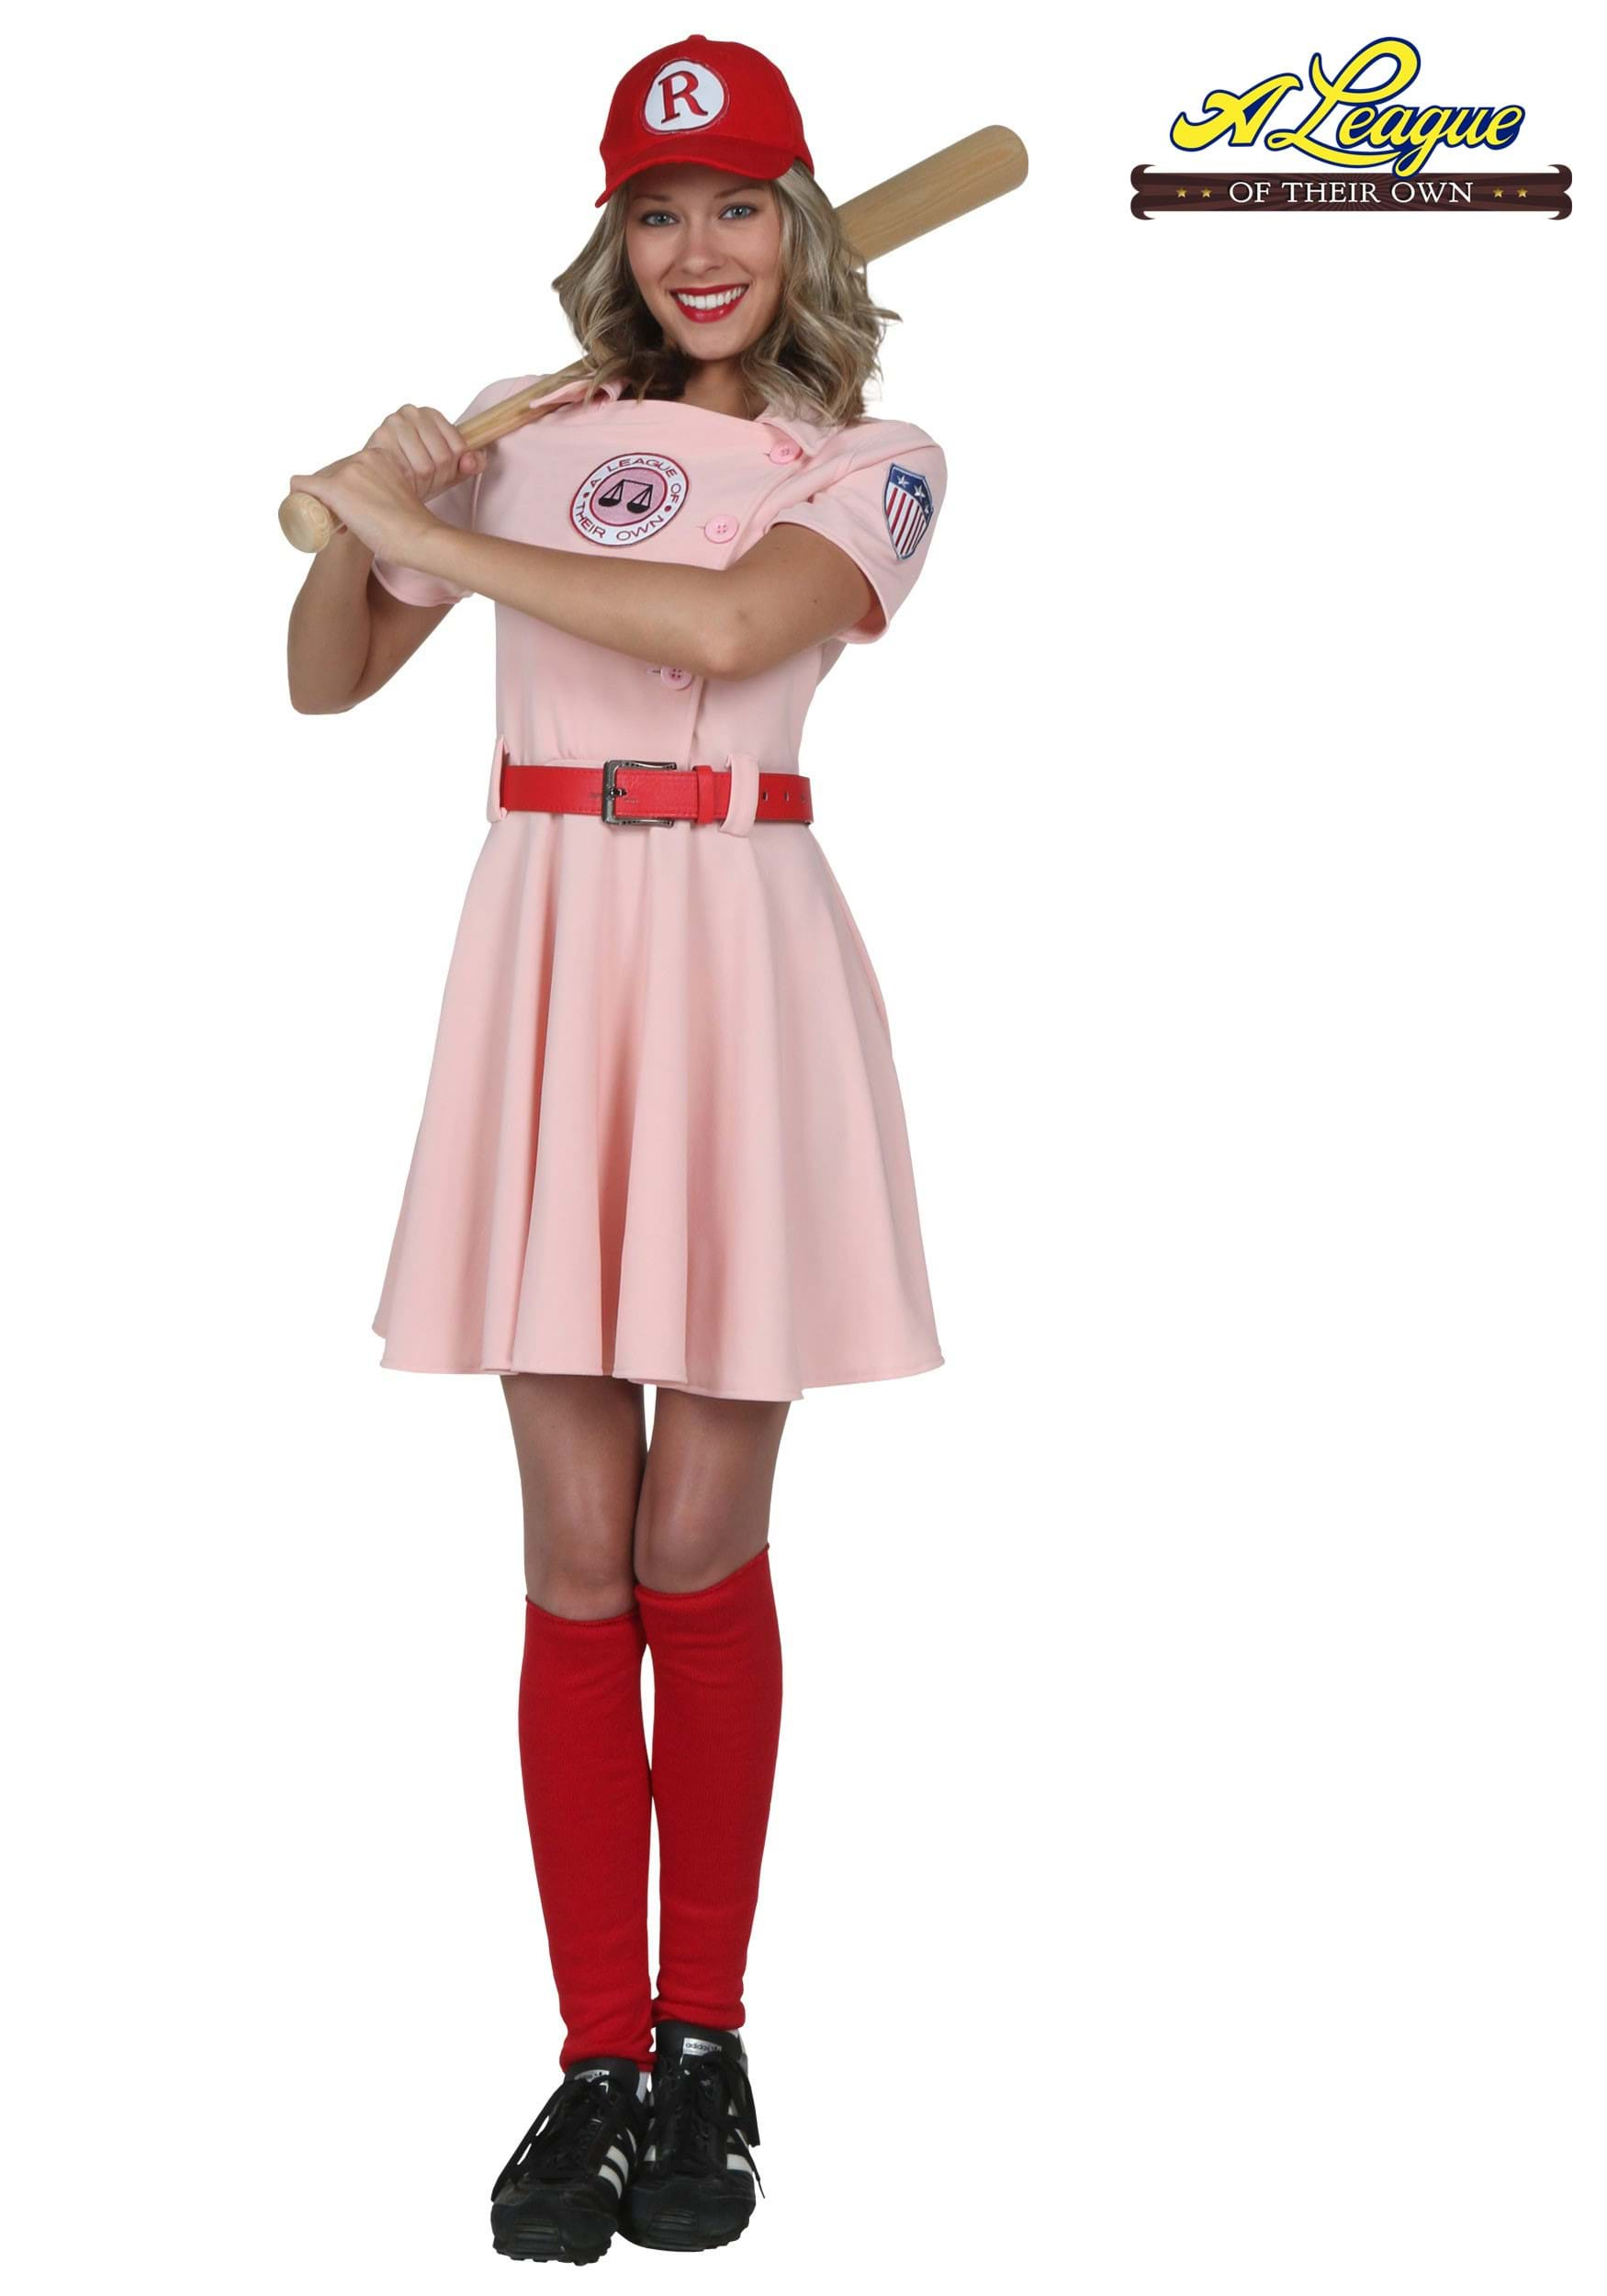 Womens Deluxe Dottie Costume From A League Of Their Own-7169